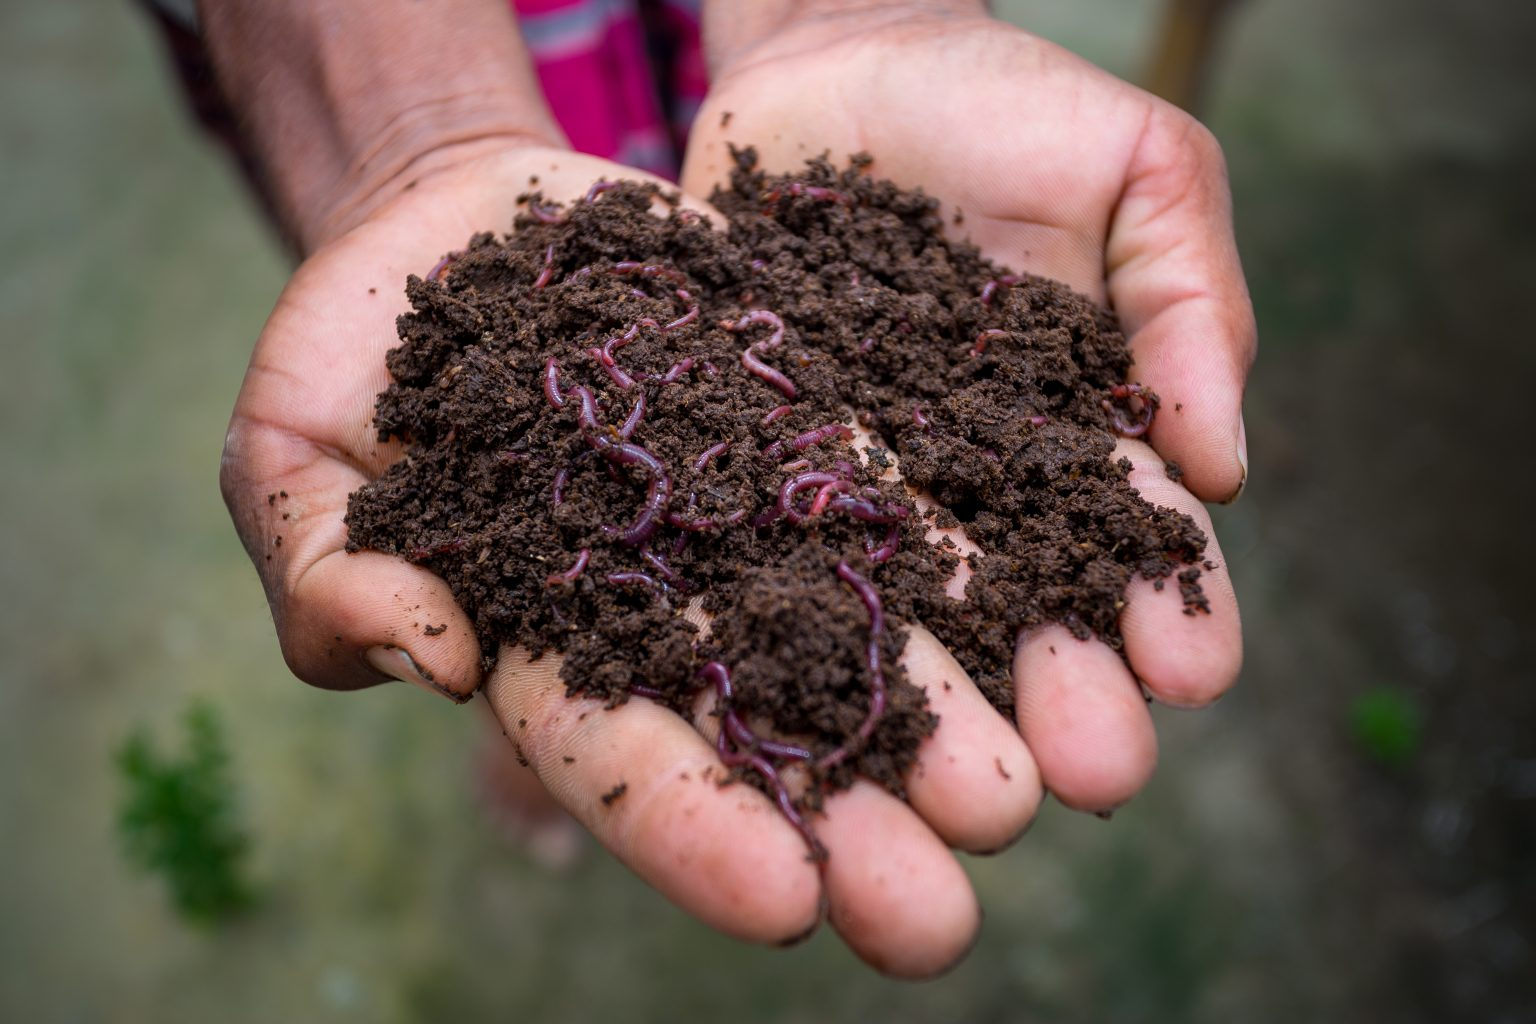 Hand,Holding,Compost,With,Redworms.,A,Farmer,Showing,The,Worms